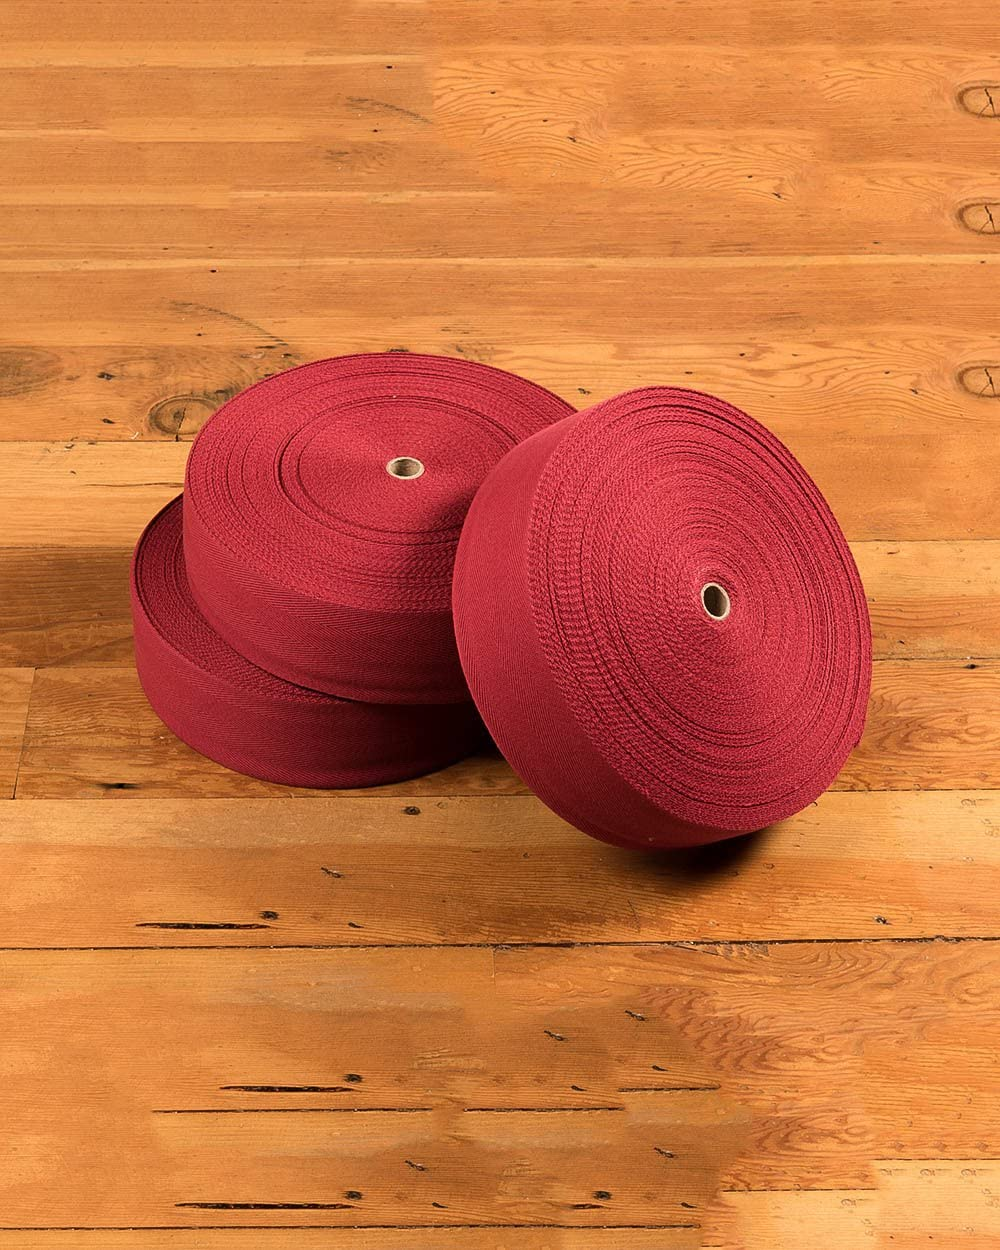 Natural Area Rugs 4.75 x 164 Foot Extra Wide Eco Friendly Cotton Non Slip Carpet Tape – Red Cherry 164